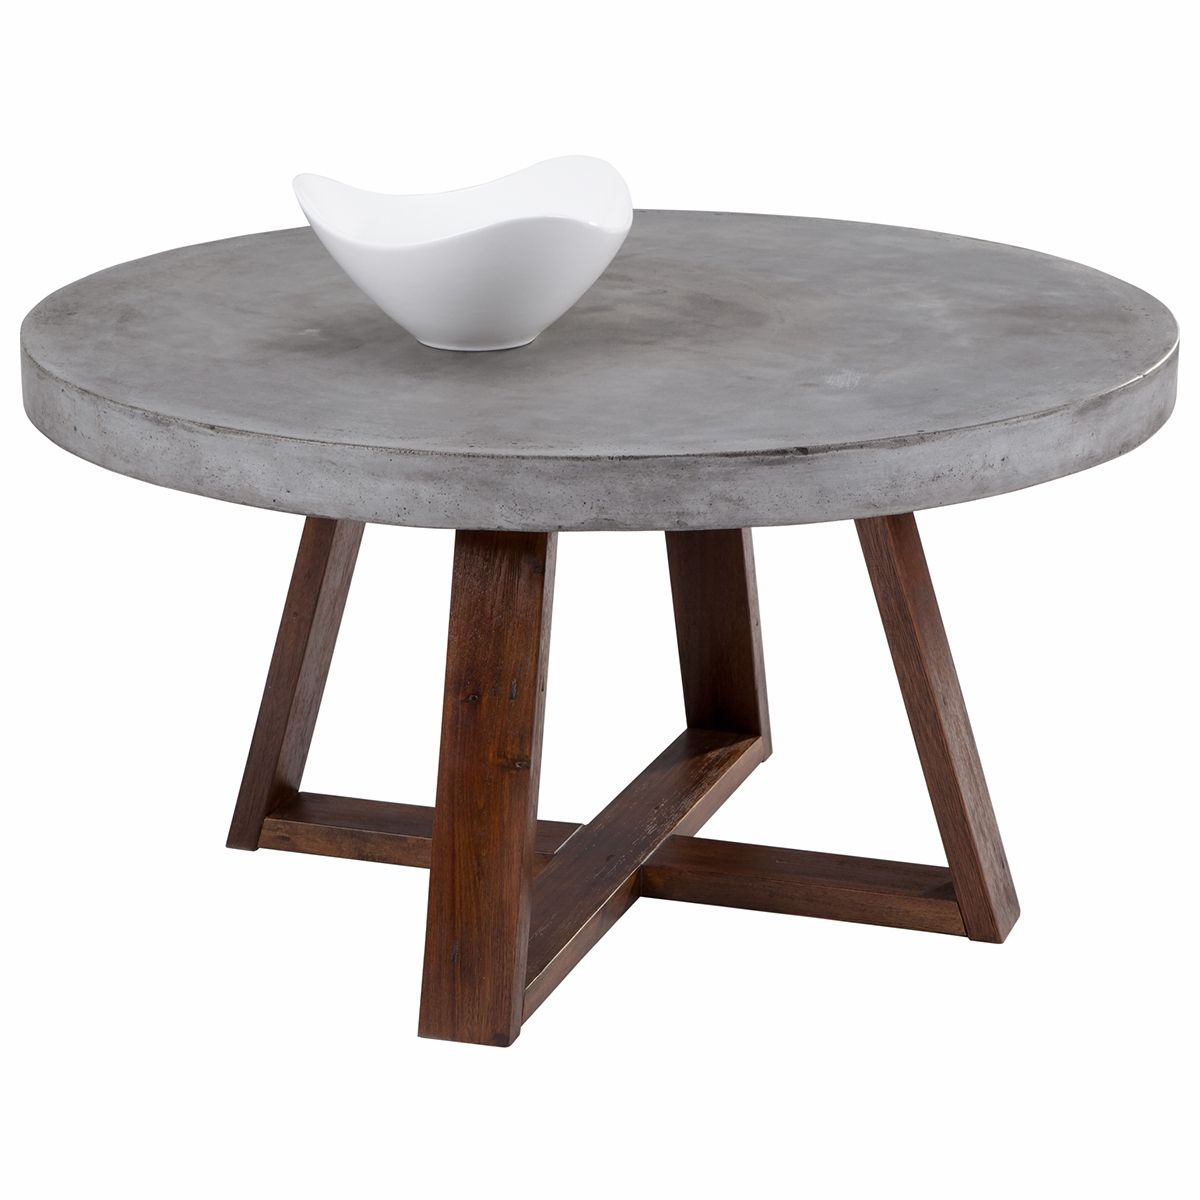 Devons Coffee Table Round Wood Coffee Table Coffee Table Coffee Table Wood [ 1200 x 1200 Pixel ]